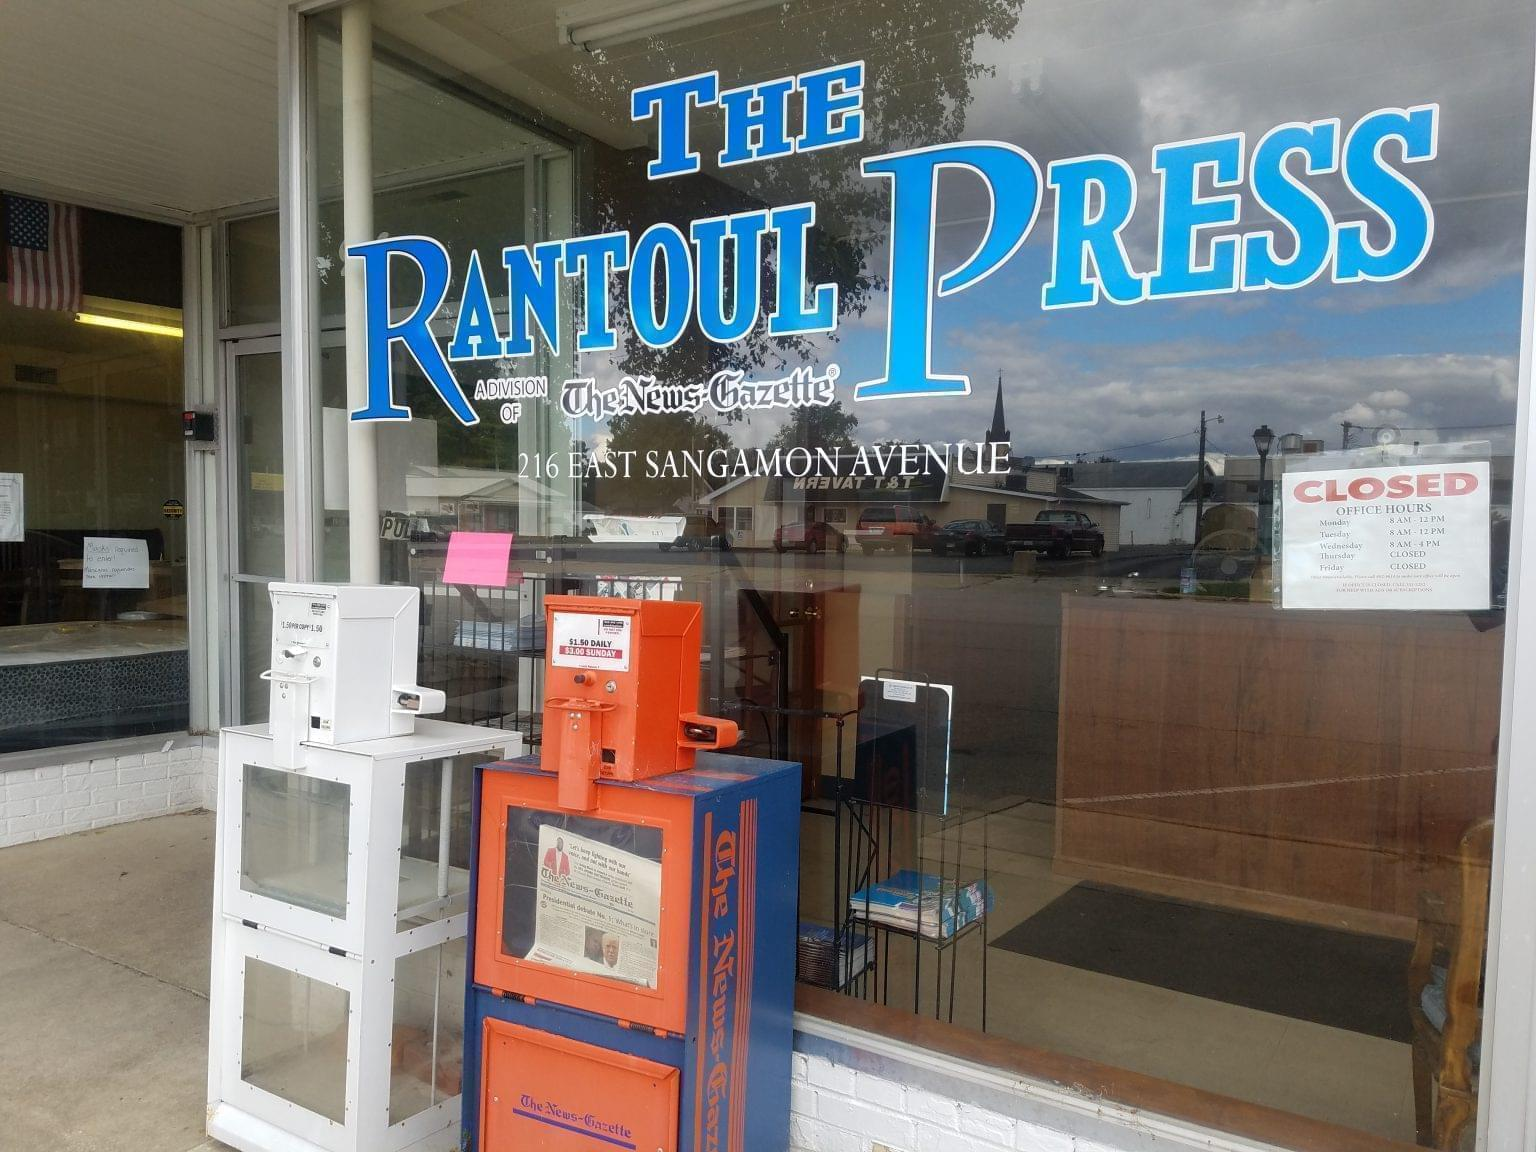 Storefront office for the Rantoul Press in downtown Rantoul.